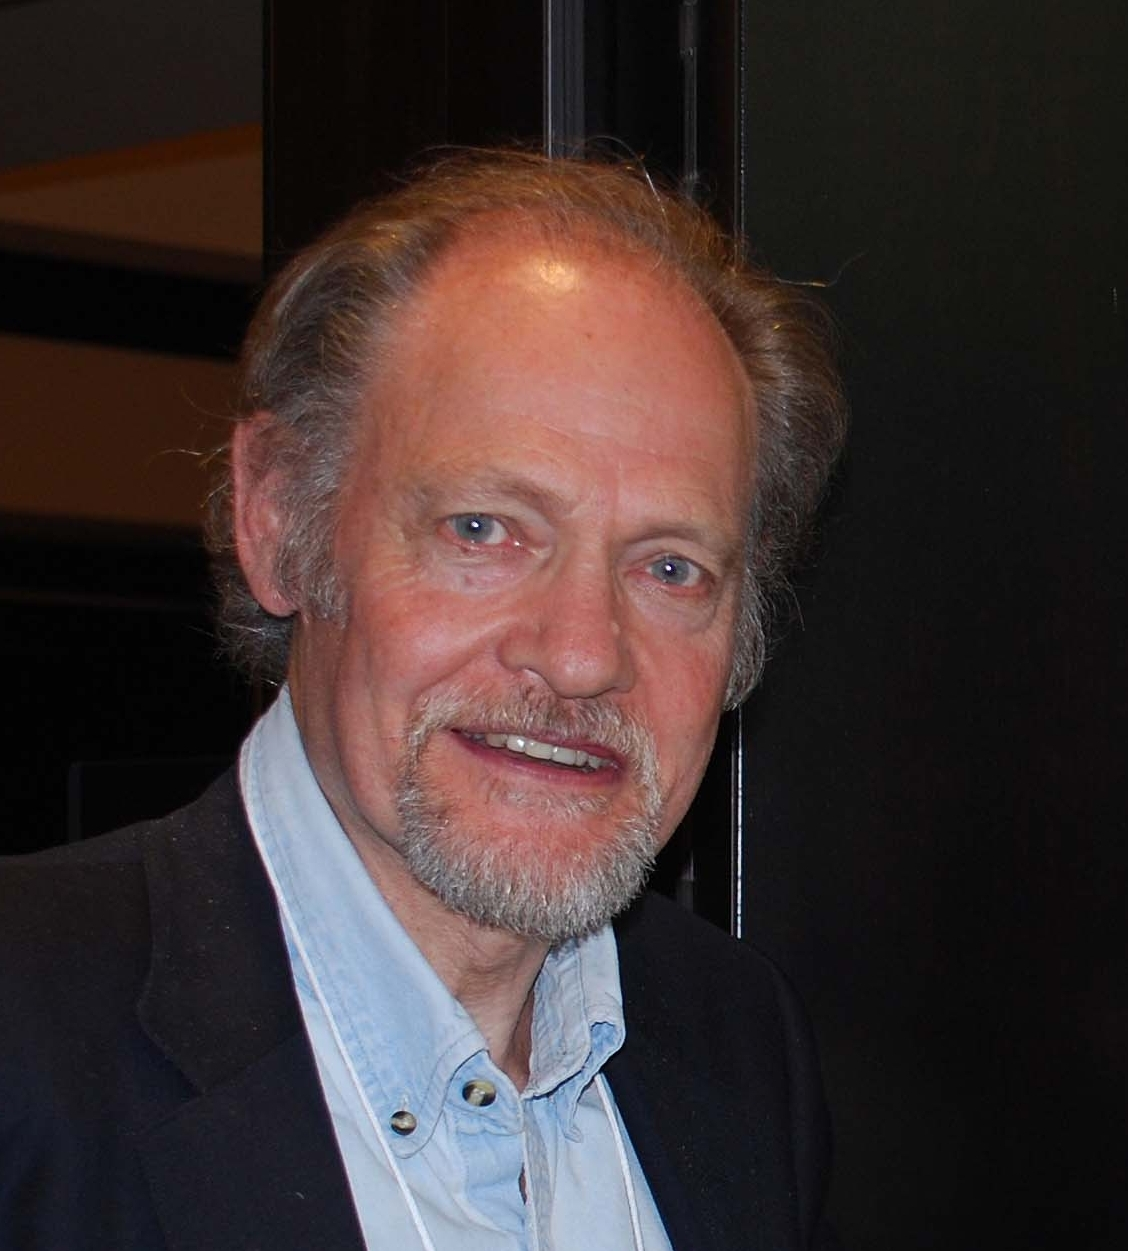 """Douglas Gibson - was called """"a publishing icon"""" by the Globe and Mail in 2007. Later Alistair MacLeod said, """"No one has done more for Canadian Literature than this man, Douglas Gibson"""". In June 2017, he was awarded The Order of Canada as an """"acclaimed publisher and literary editor.""""After a career in Canadian Publishing that began in 1968, he """"retired"""" in 2007. As an editor he has worked with three Prime Ministers, and with Hugh MacLennan, Morley Callaghan, W.O.Mitchell, Mavis Gallant, and many more. He has written two books about his authors: Stories About Storytellers: Publishing Alice Munro, Robertson Davies, Alistair MacLeod, Pierre Trudeau, and Others. (ECW,2011) . In 2015 he brought out Across Canada By Story: A Coast-to-Coast Literary Adventure (ECW). Both books—and the stage shows that they produced—were illustrated by Anthony Jenkins. So far he has given more than 160 such shows, across Canada, and in Beijing, Shanghai, and in Canada House in London, where he fell off the stage."""